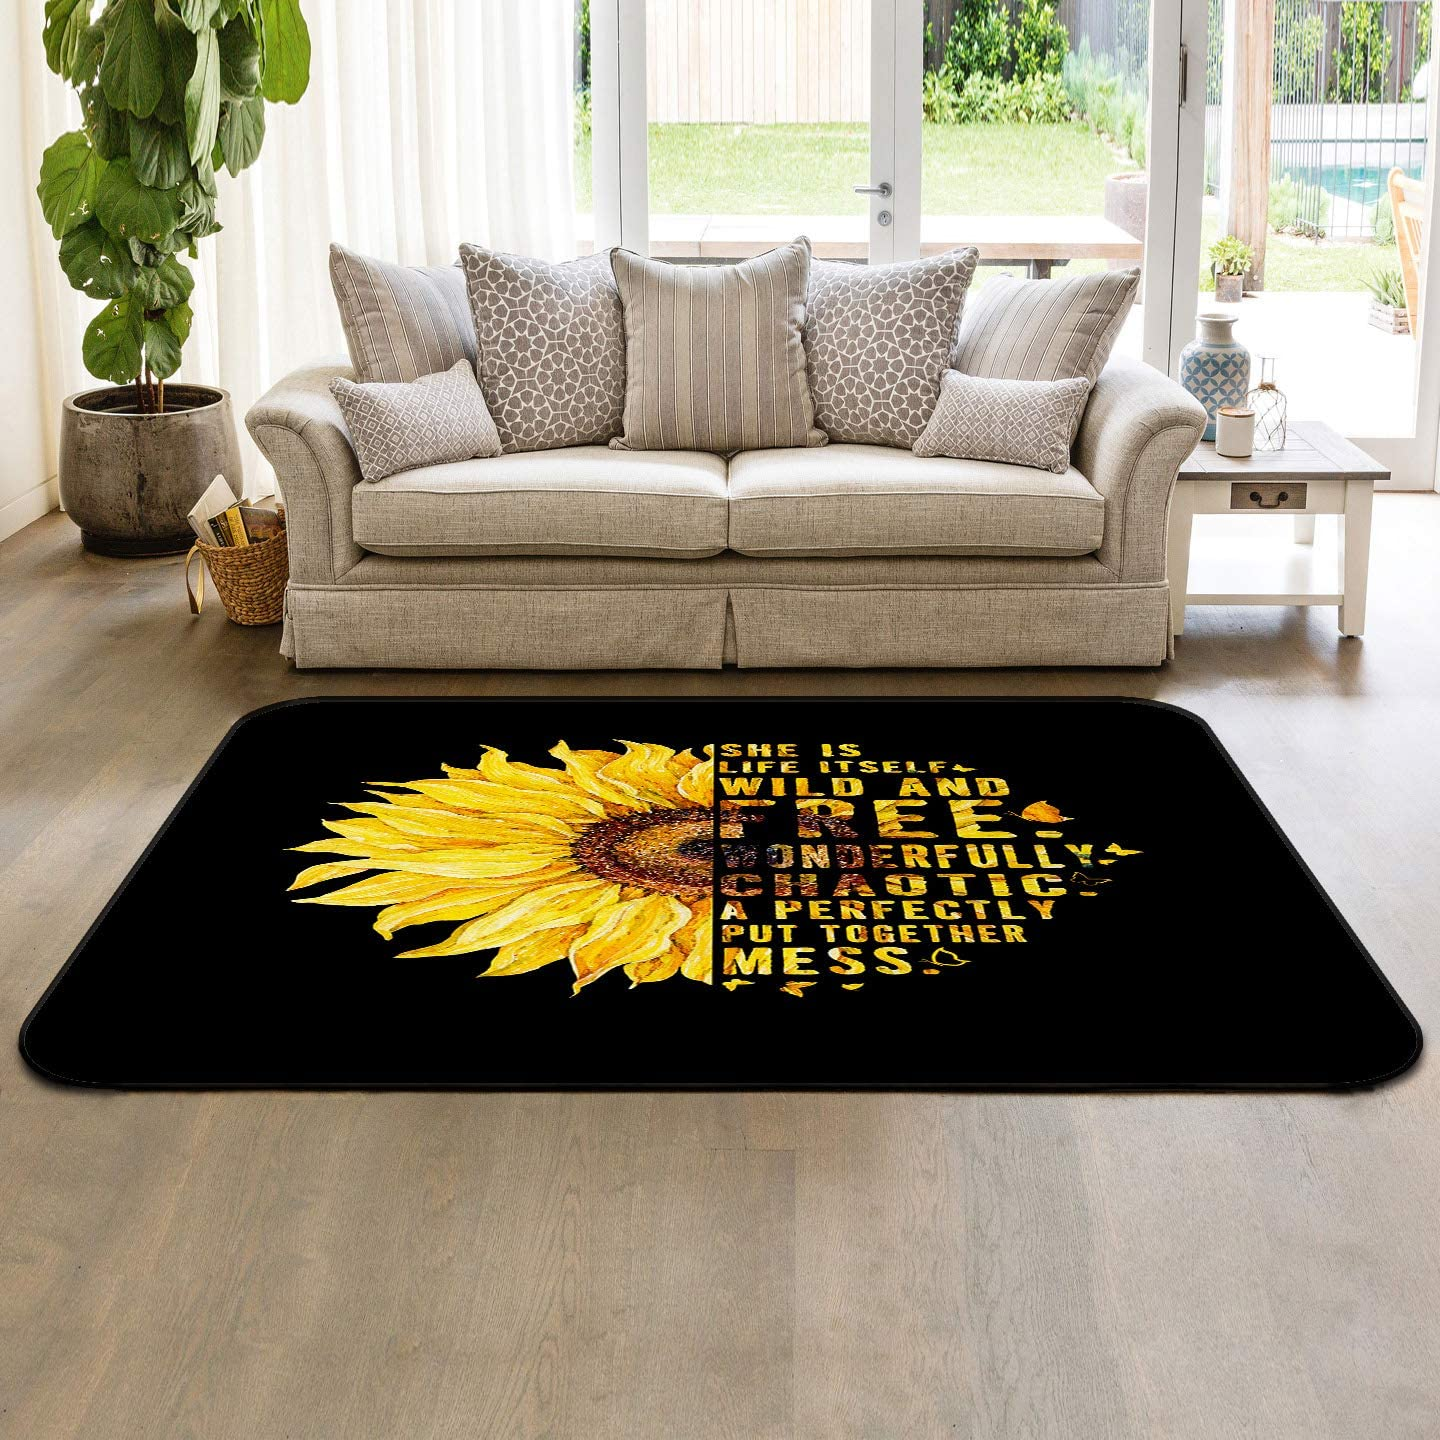 Soft Award Area Rugs for Bedroom Sunflower W Word Text Butterfly Black Colorado Springs Mall